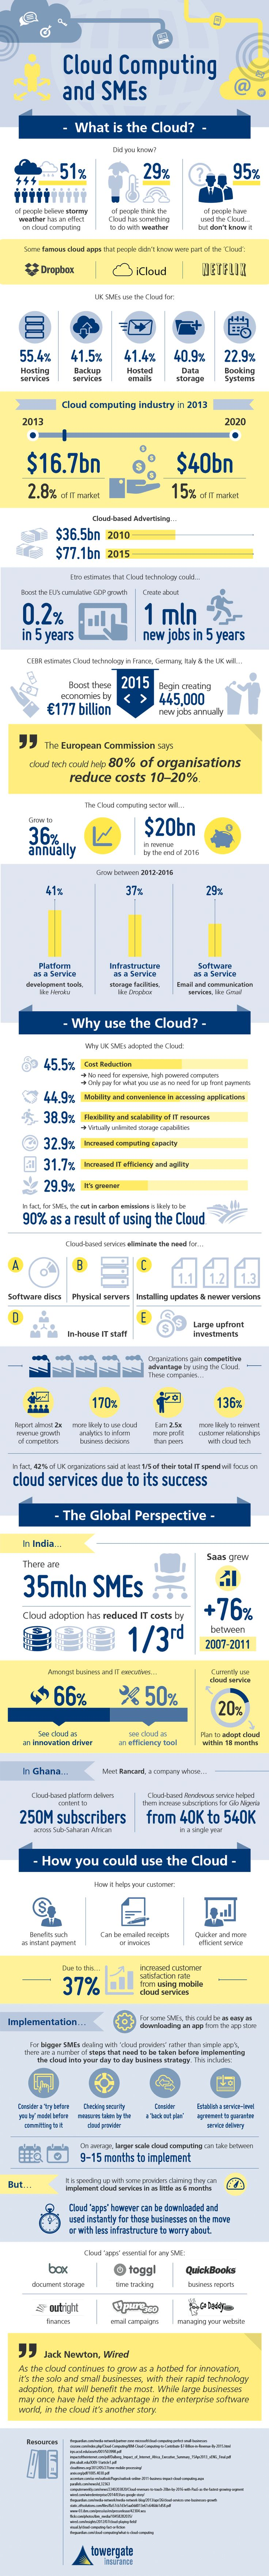 Cloud Computing and SMEs    #infographic #CloudComputing #SmallBusiness #Srartup